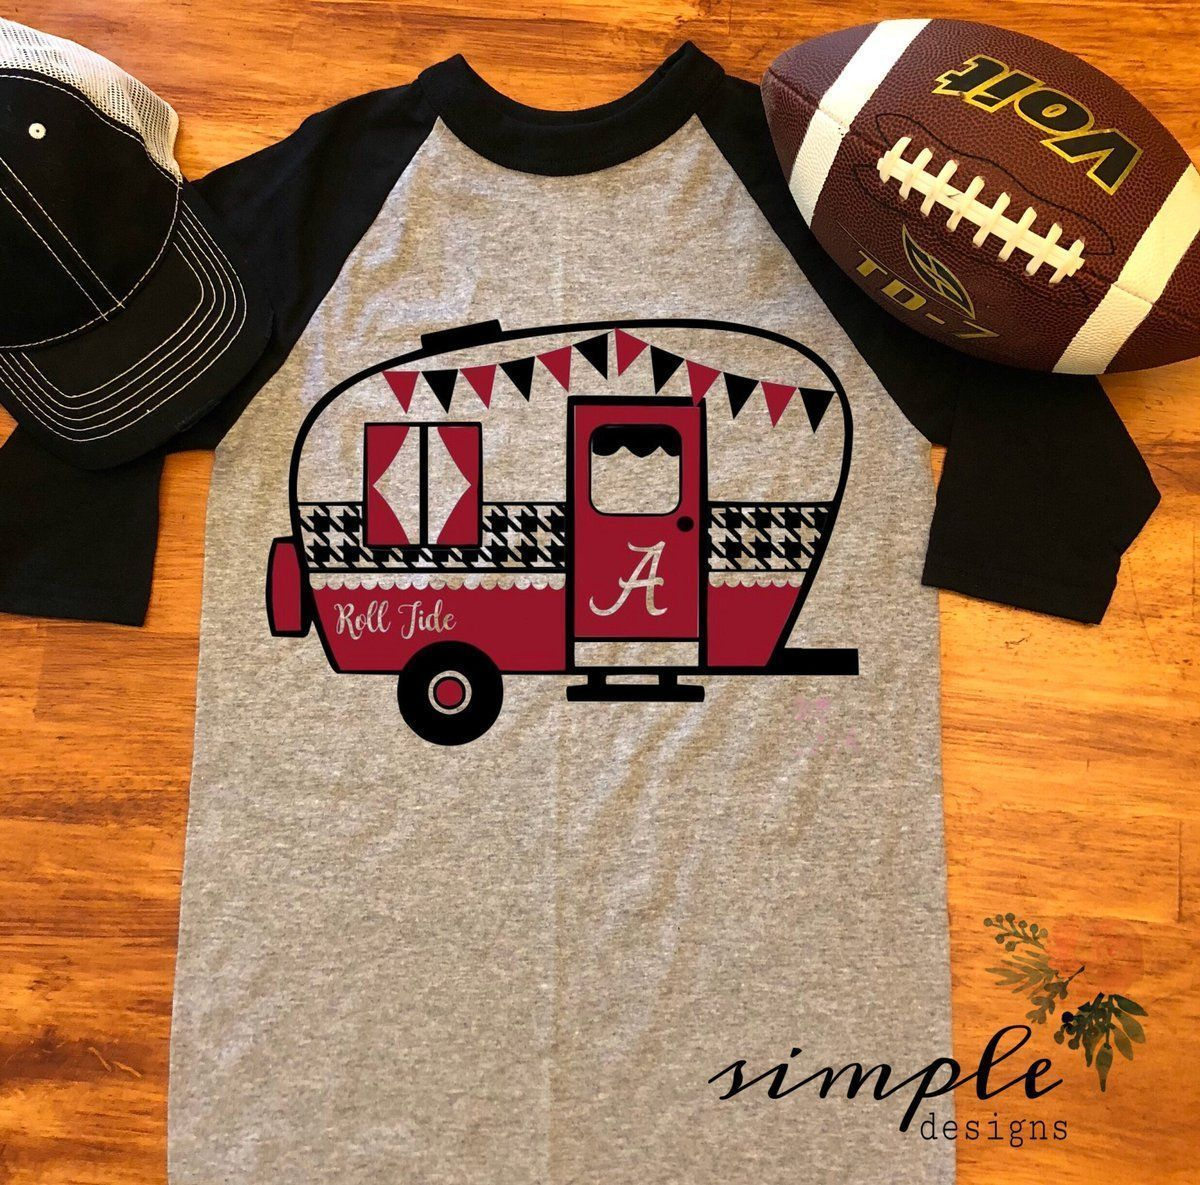 Roll Tide Alabama Football Raglan, Football Shirts, Team Shirts #rolltidealabama Roll Tide Alabama Football Raglan, Football Shirts, Team Shirts – Simple Designs and More #rolltidealabama Roll Tide Alabama Football Raglan, Football Shirts, Team Shirts #rolltidealabama Roll Tide Alabama Football Raglan, Football Shirts, Team Shirts – Simple Designs and More #rolltidealabama Roll Tide Alabama Football Raglan, Football Shirts, Team Shirts #rolltidealabama Roll Tide Alabama Football Raglan, Foot #rolltidealabama